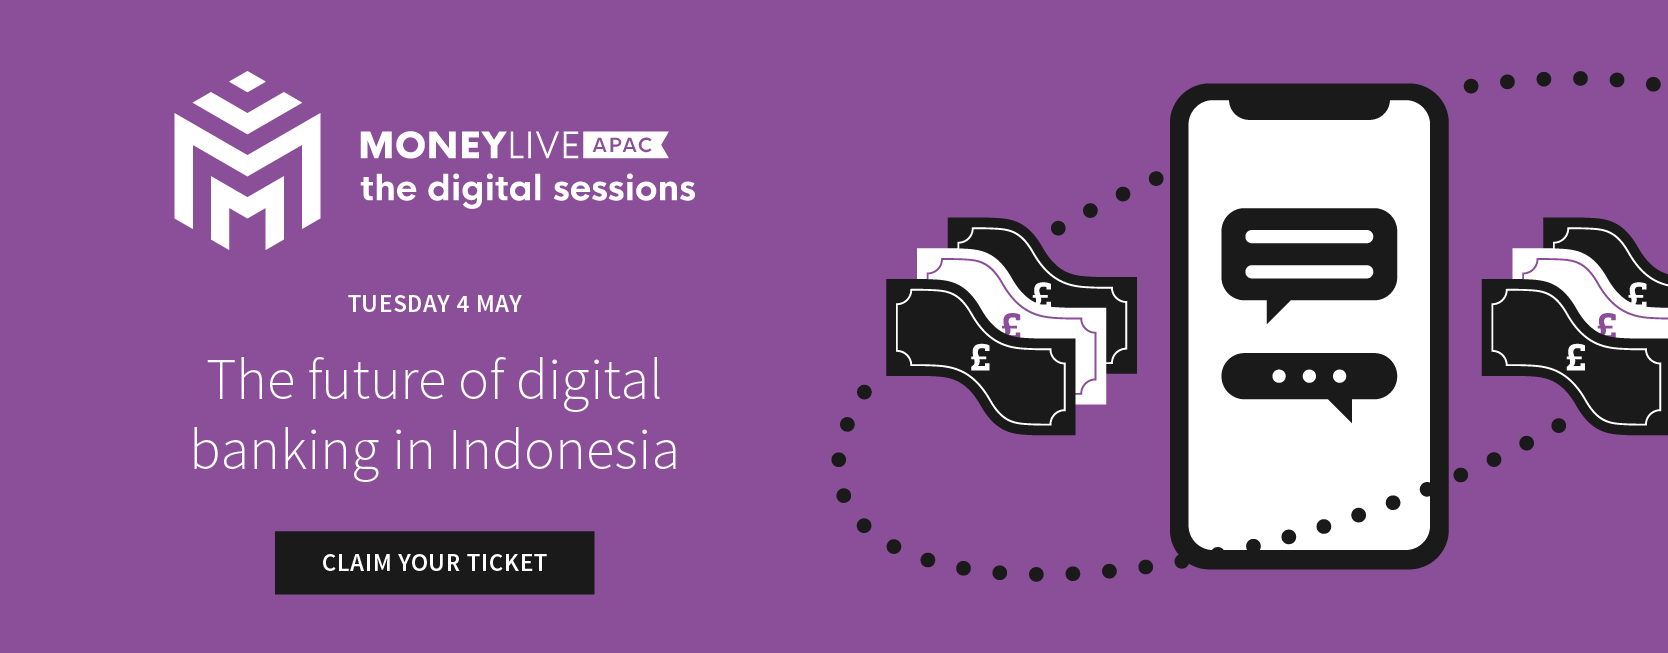 MoneyLIVE APAC digital session